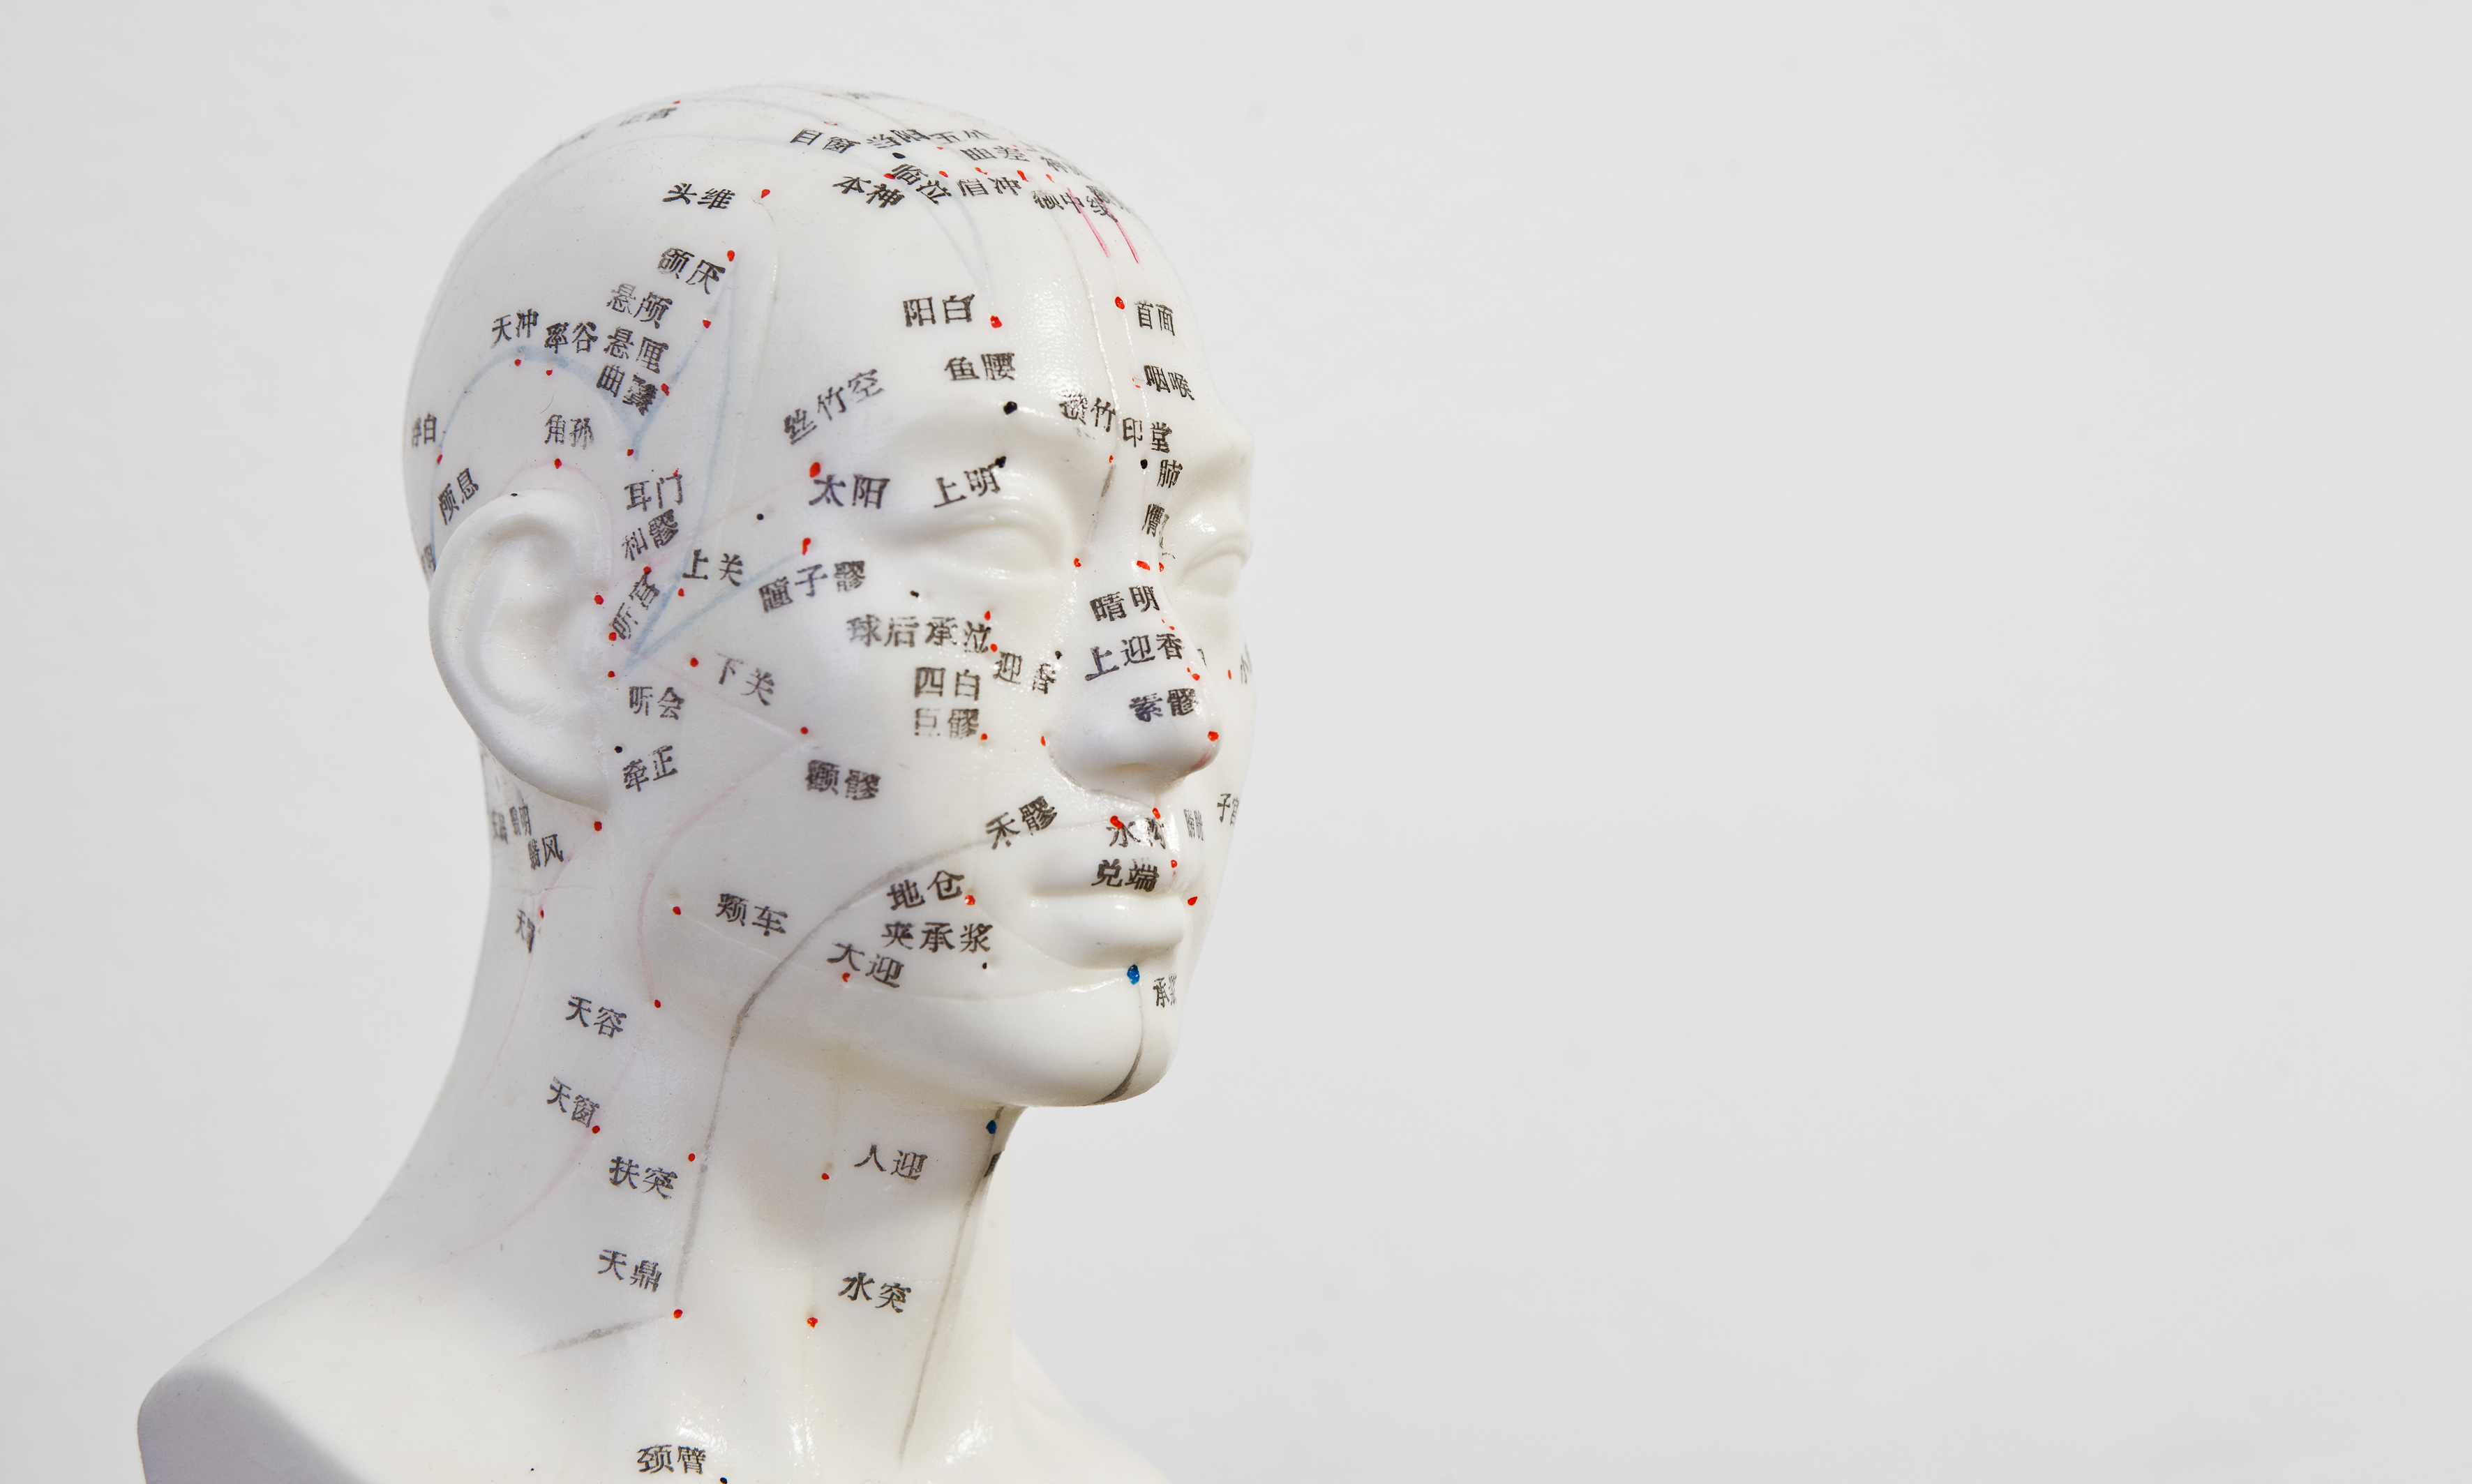 Where can acupuncture help?